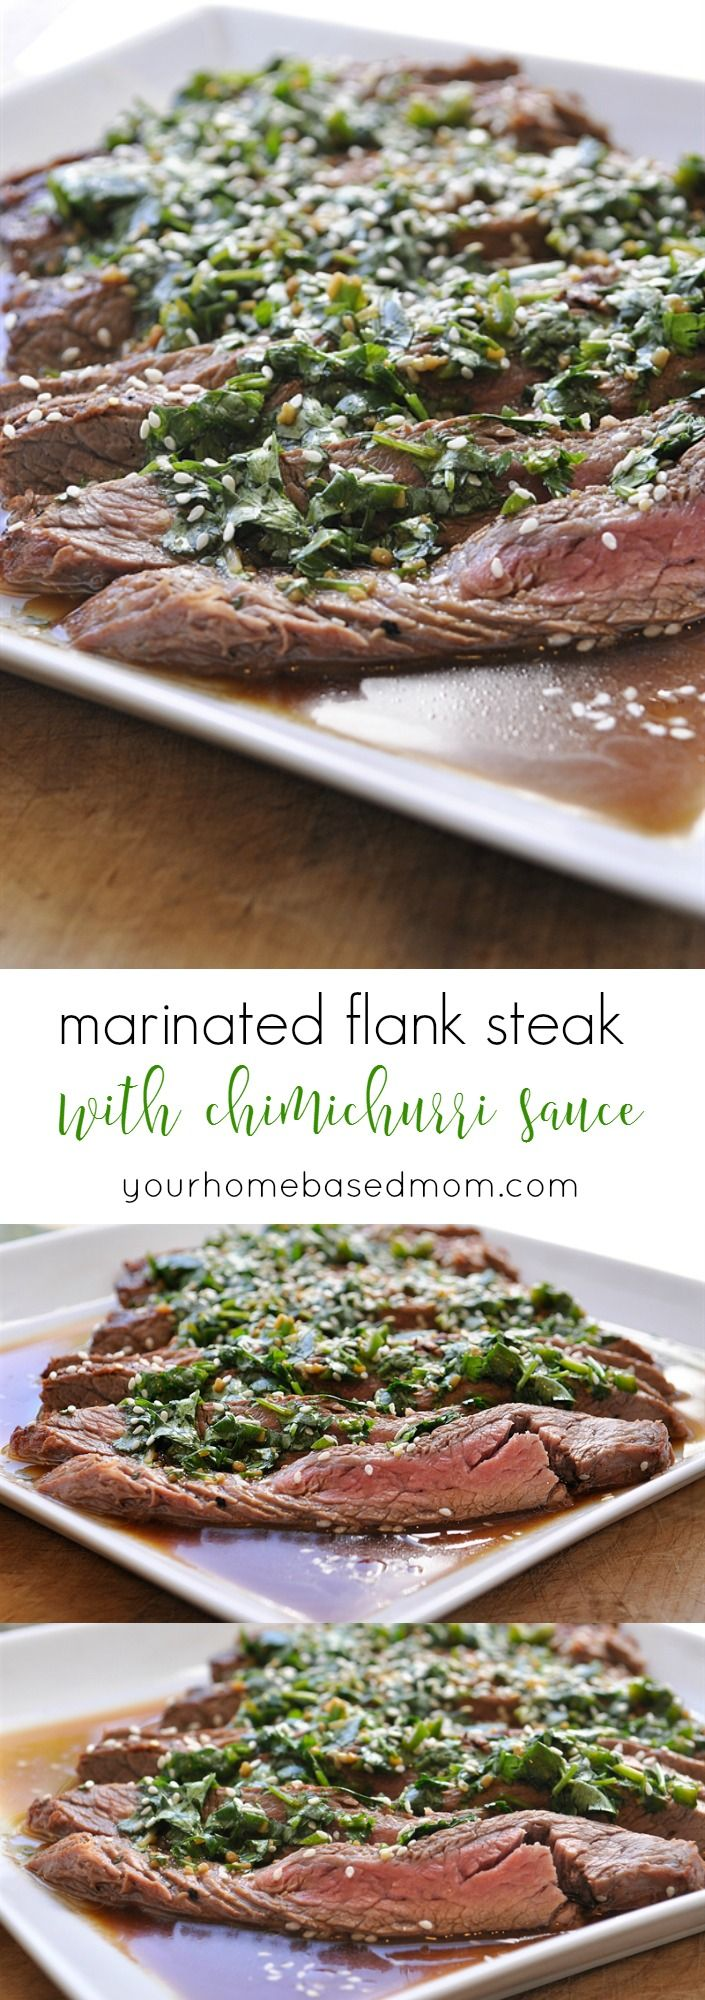 Marinated Flank Steak with Chimichurri Sauce  C